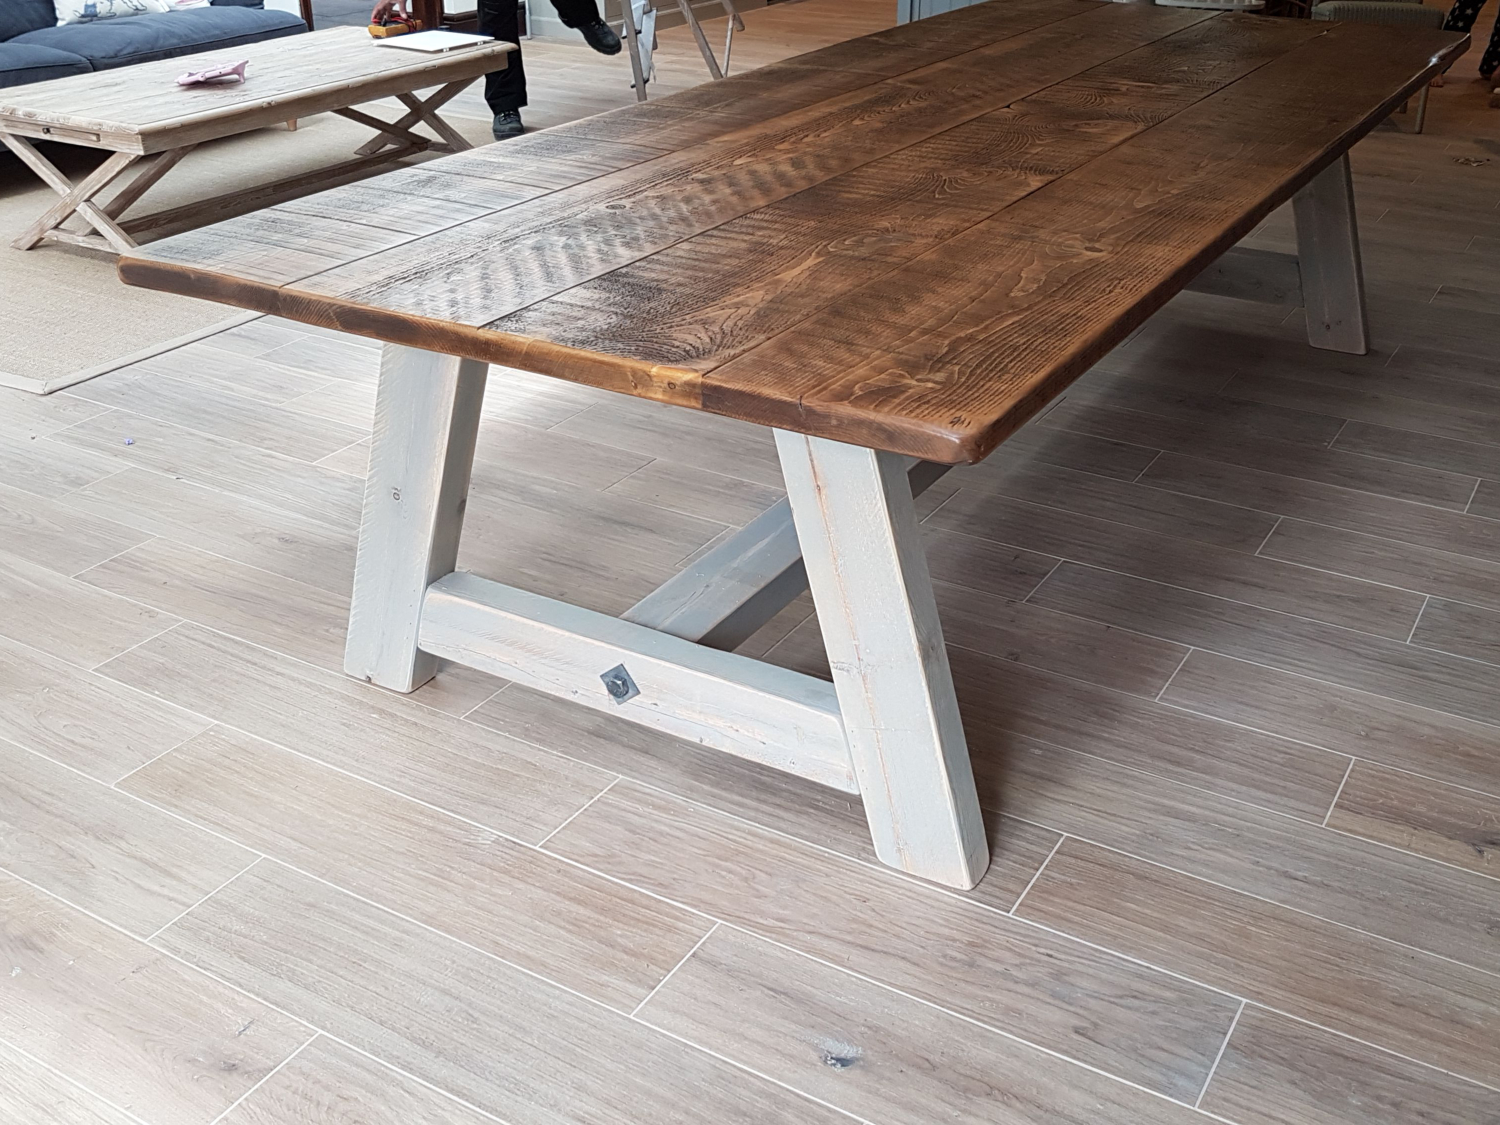 Large A Frame Tables - Made to Bespoke Sizes